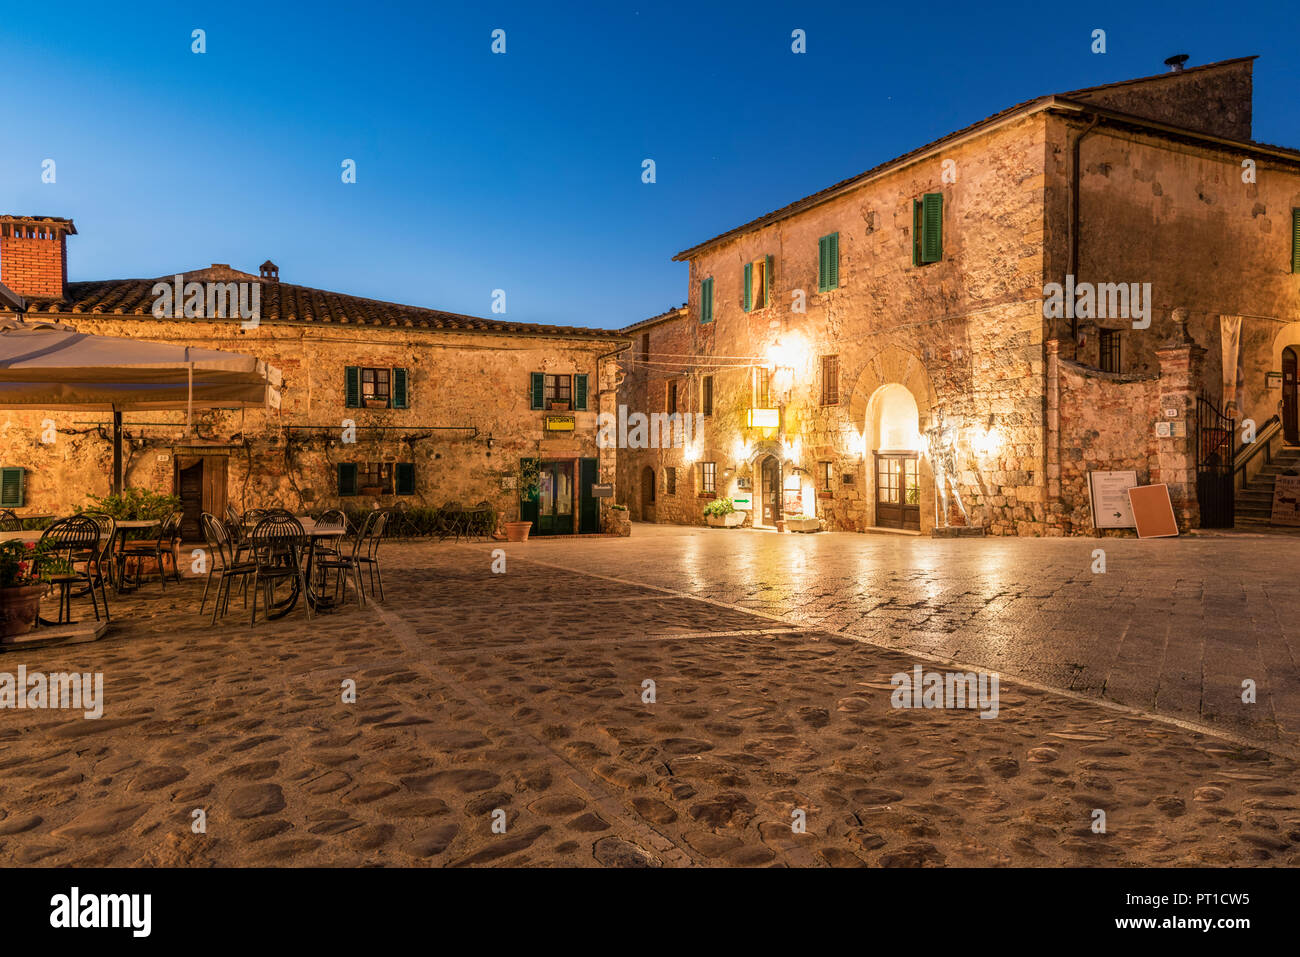 Italy, Tuscany, Monteriggioni, historical core city in the evening - Stock Image